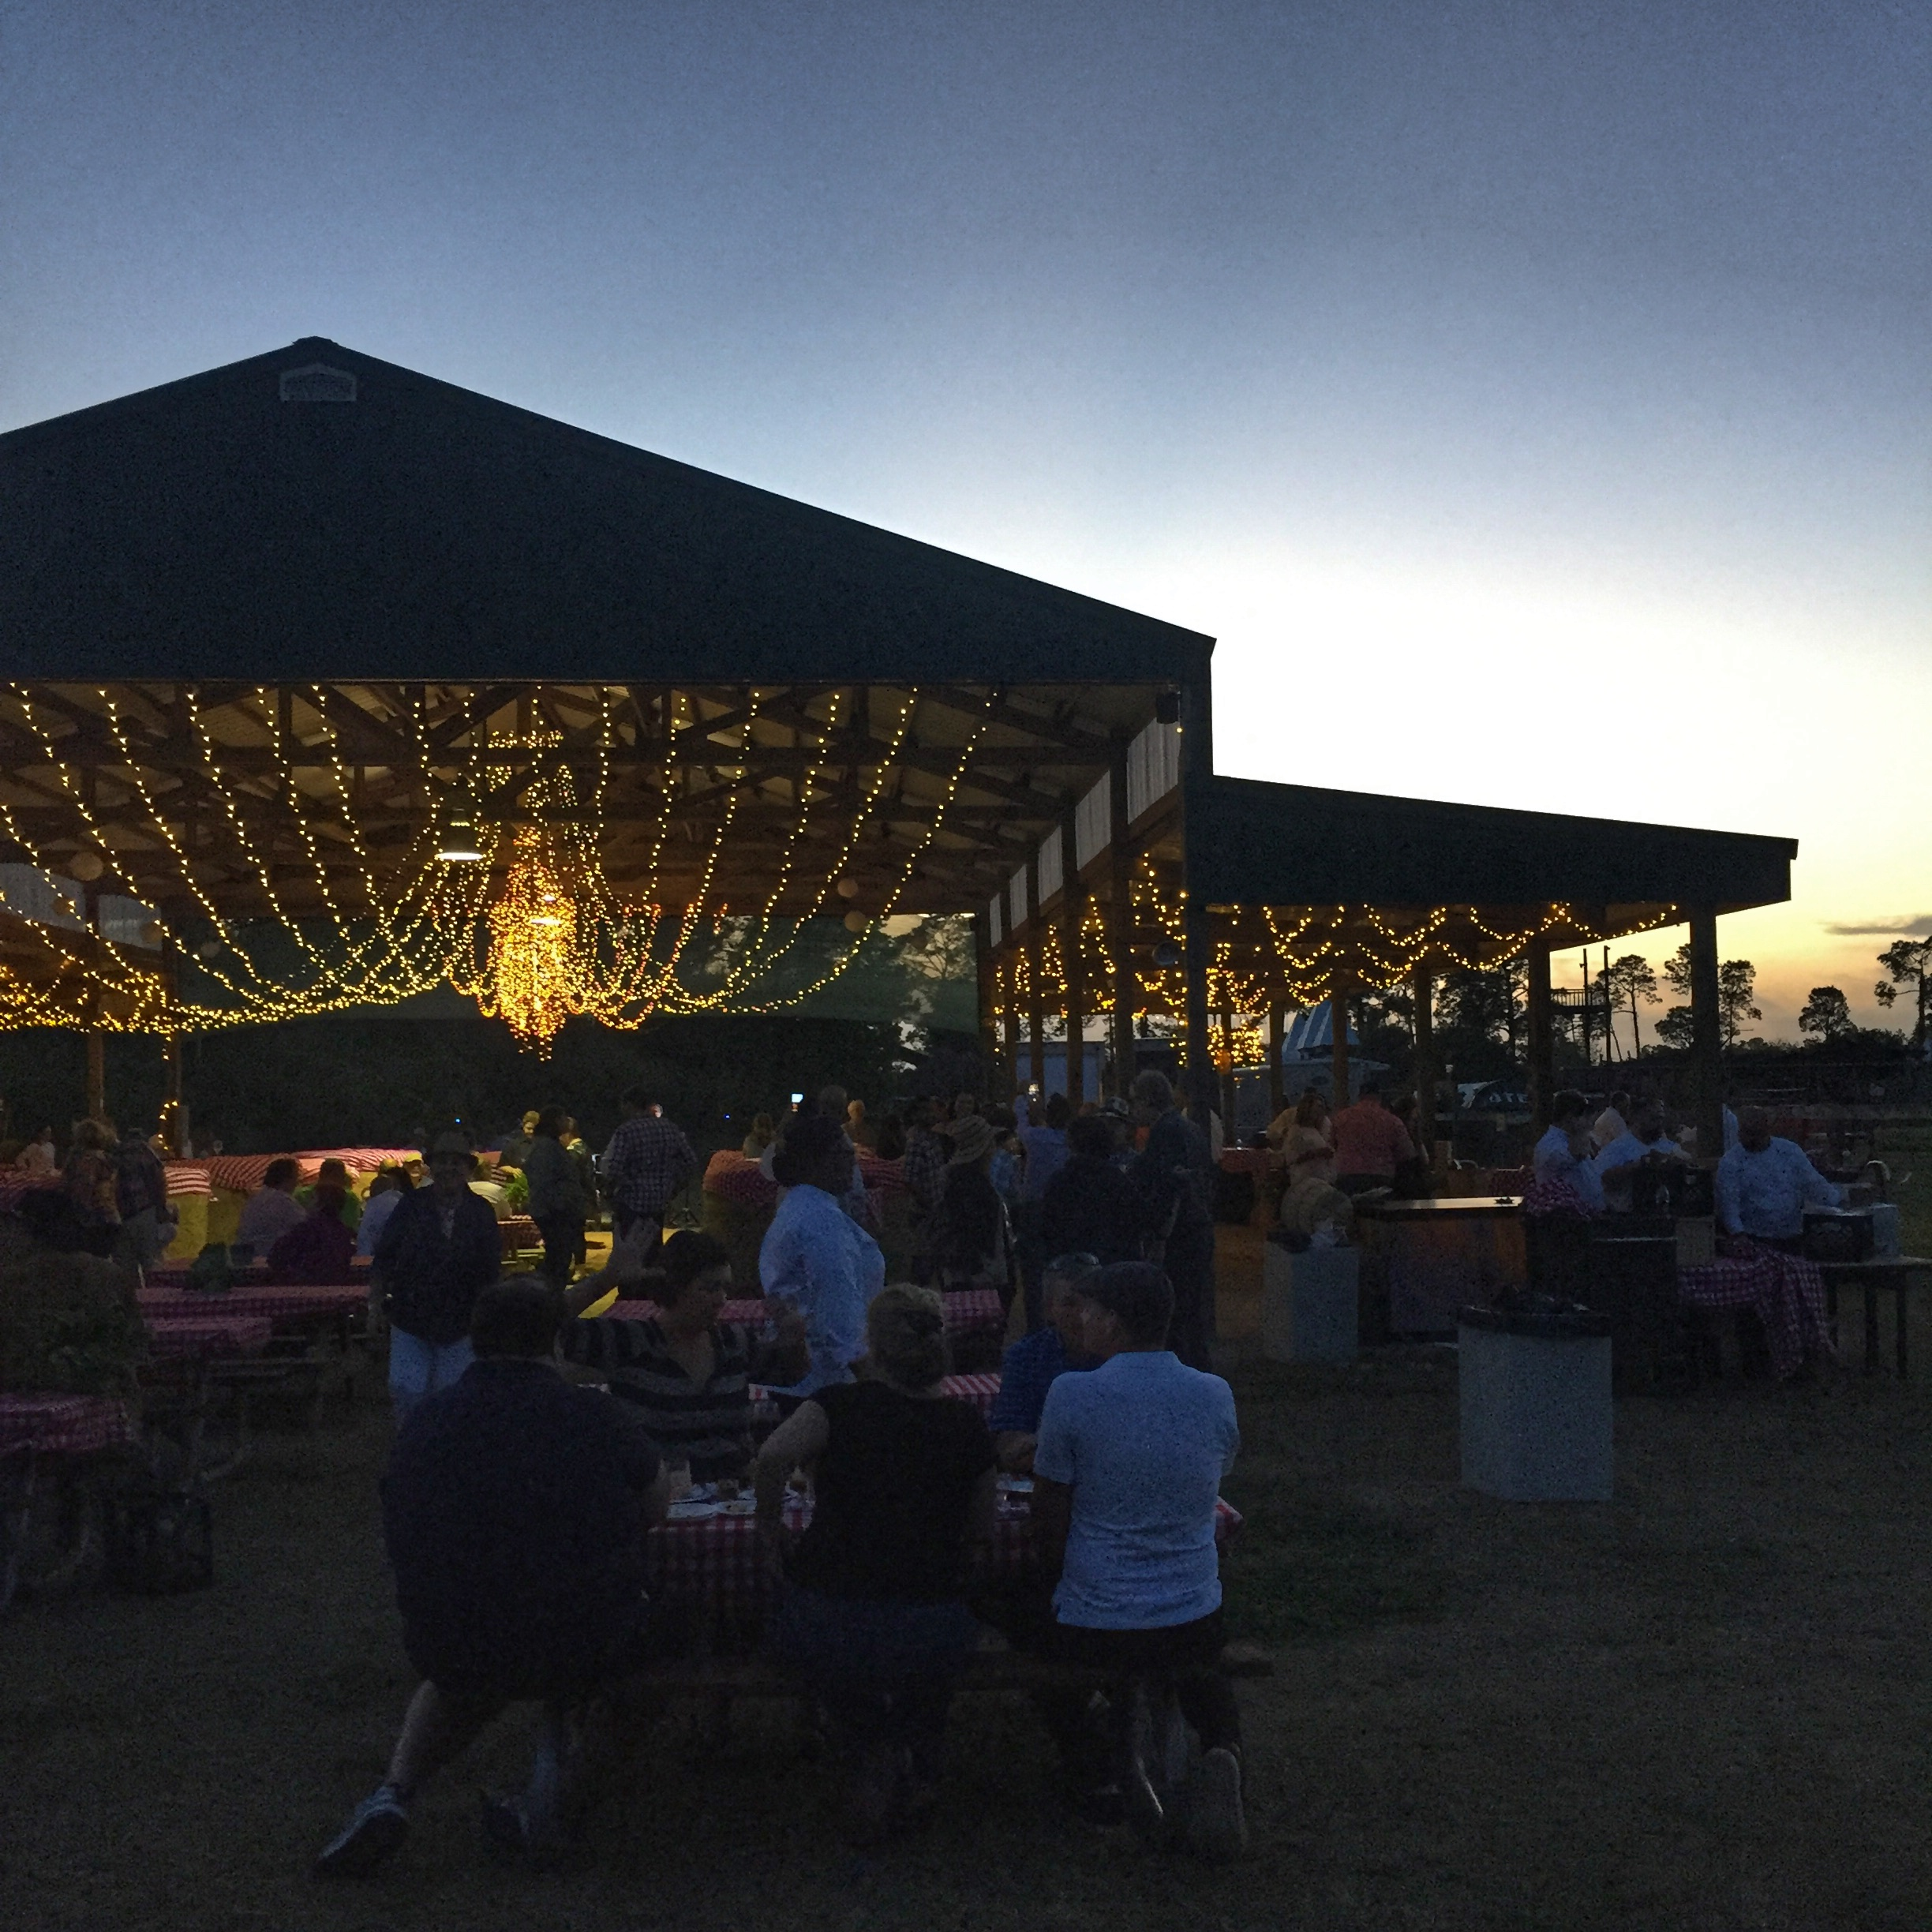 The Edible Orlando Field to Feast dinner, which started at 4:30pm,began twinkling at dusk. Photo courtesy of Kristen Manieri, Orlando Date Night Guide